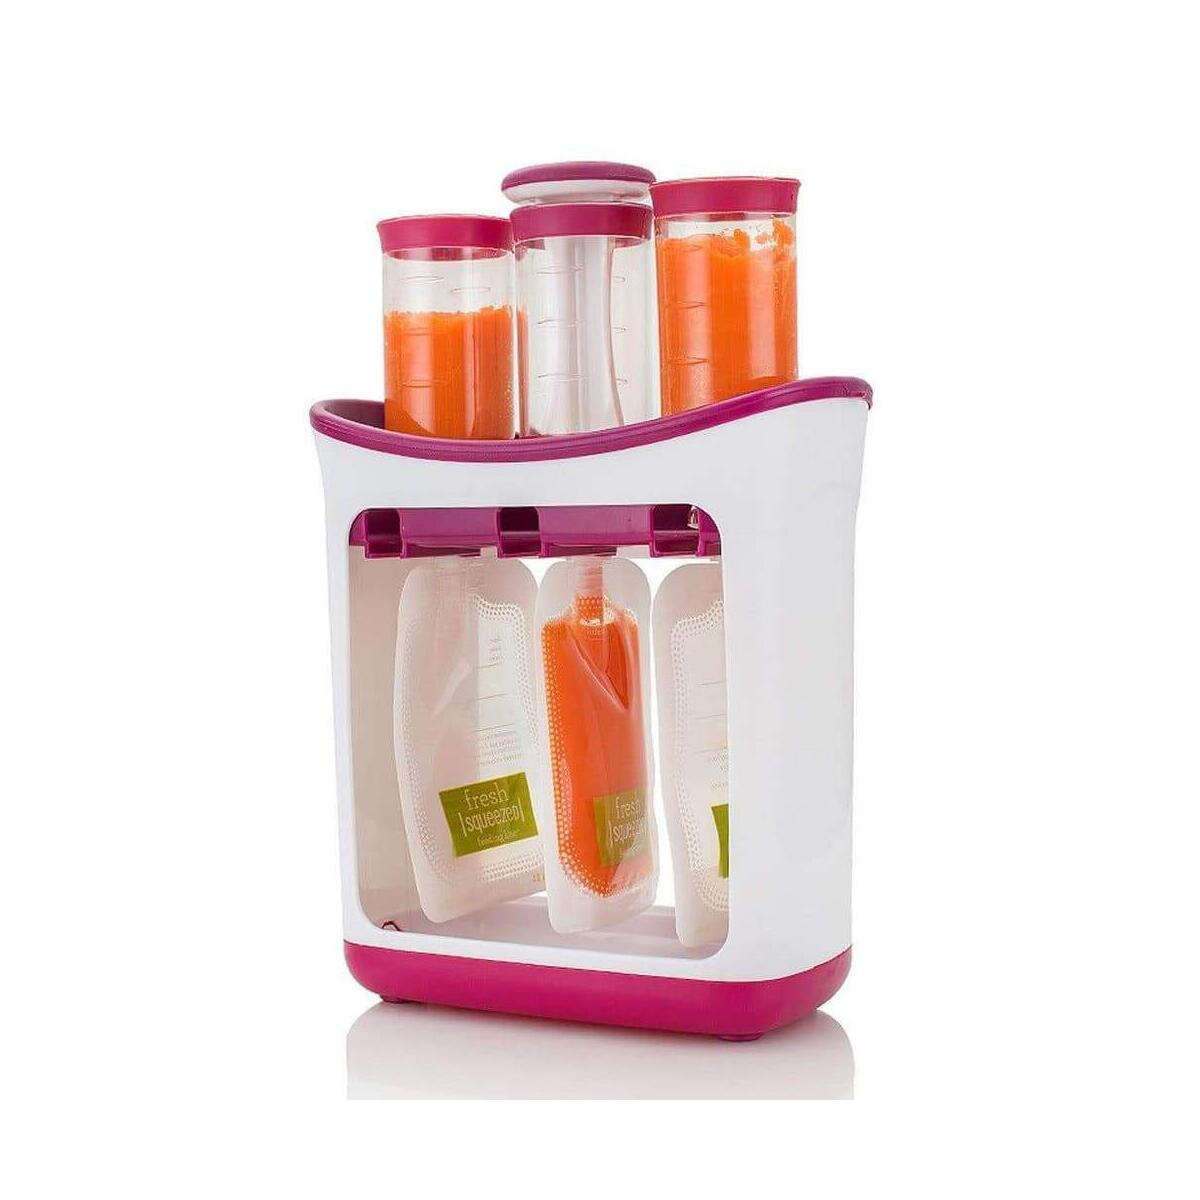 Baby Food Maker Infant Feeding Containers Storage Starter Kit Food Squeeze Station Baby Fruit Puree Packing Machine Toddler Solid Juice Maker